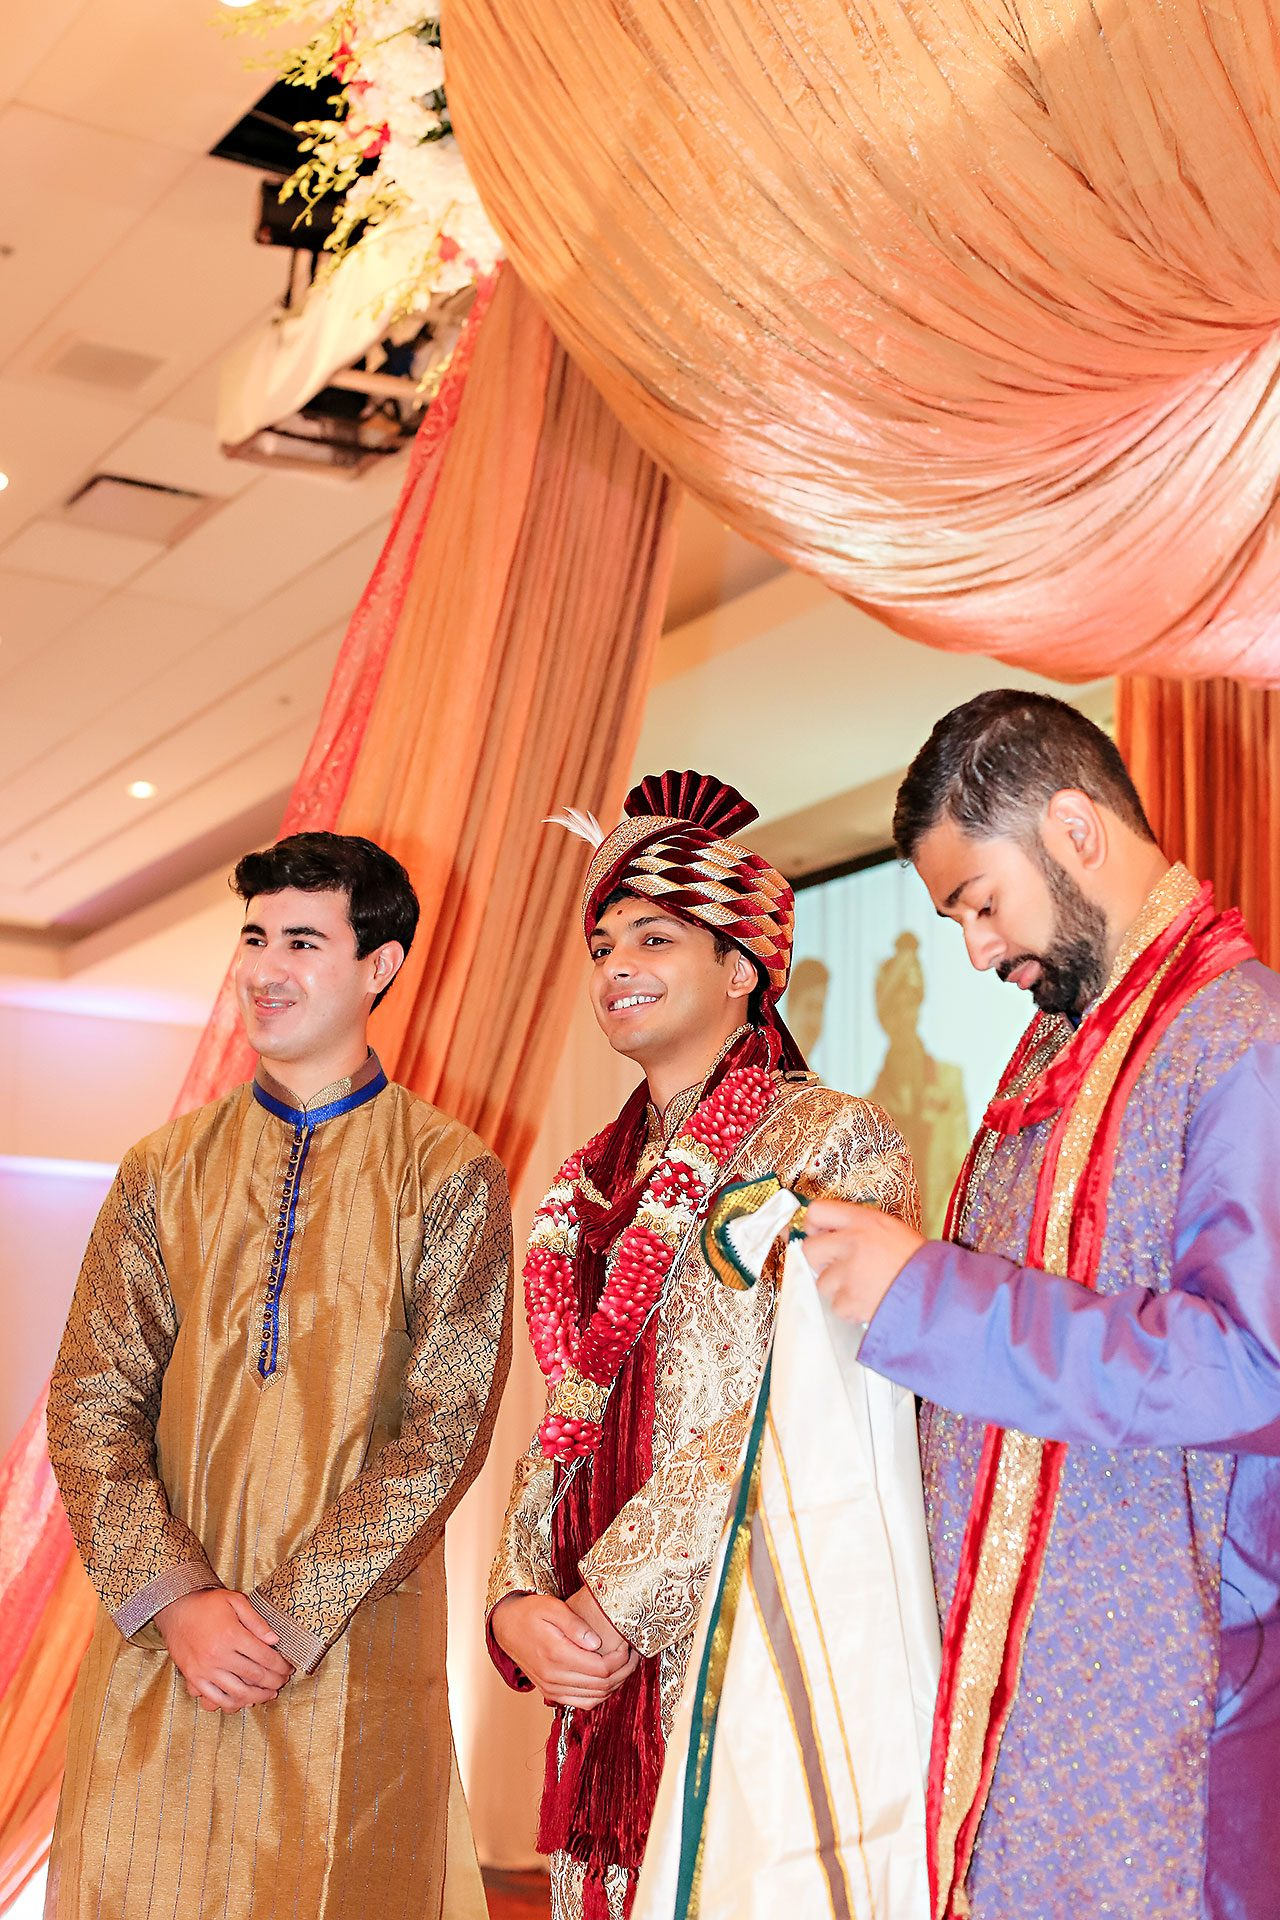 Joie Nikhil JW Marriott Indian Wedding 242